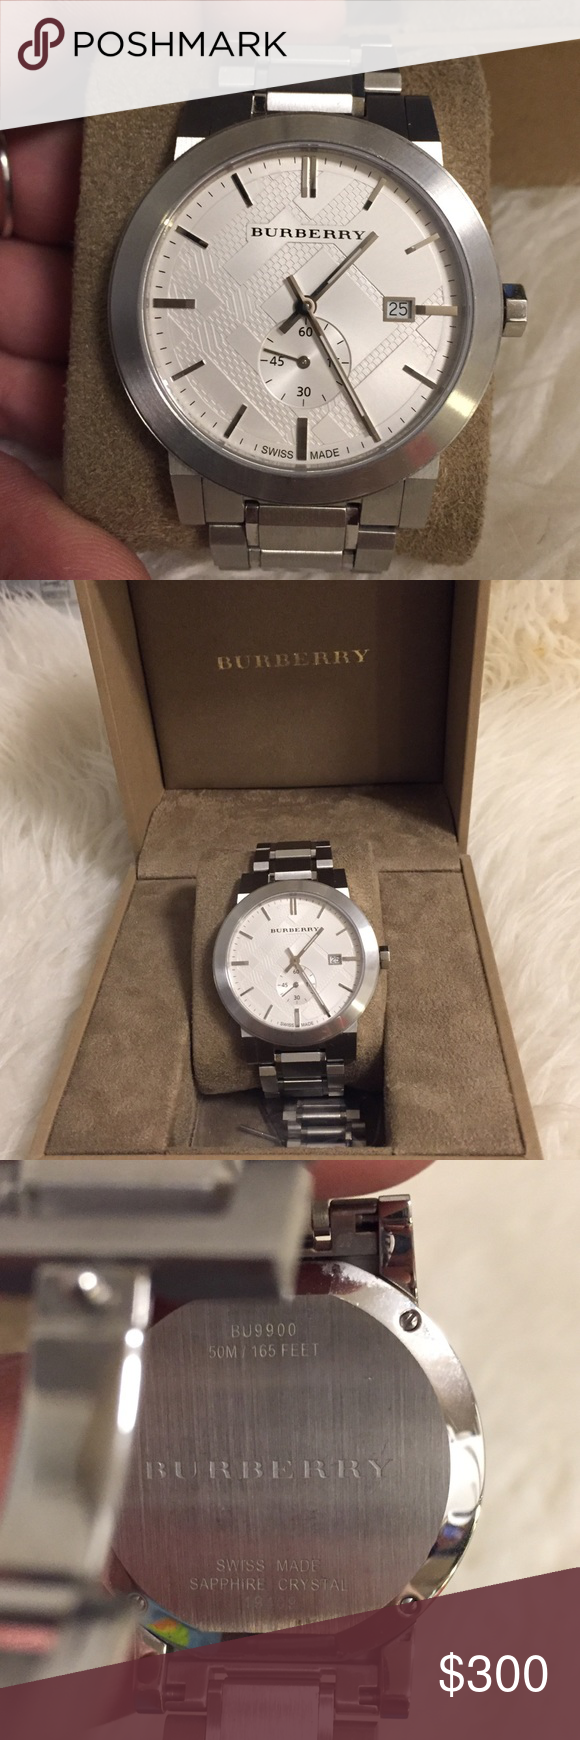 d58653c1829 ⏱Men's Burberry watch ⏱ BU9900 42mm men's swiss stainless steal Burberry  bracelet watch. Water resistant to 50 meters. Comes with extra links and  was ...